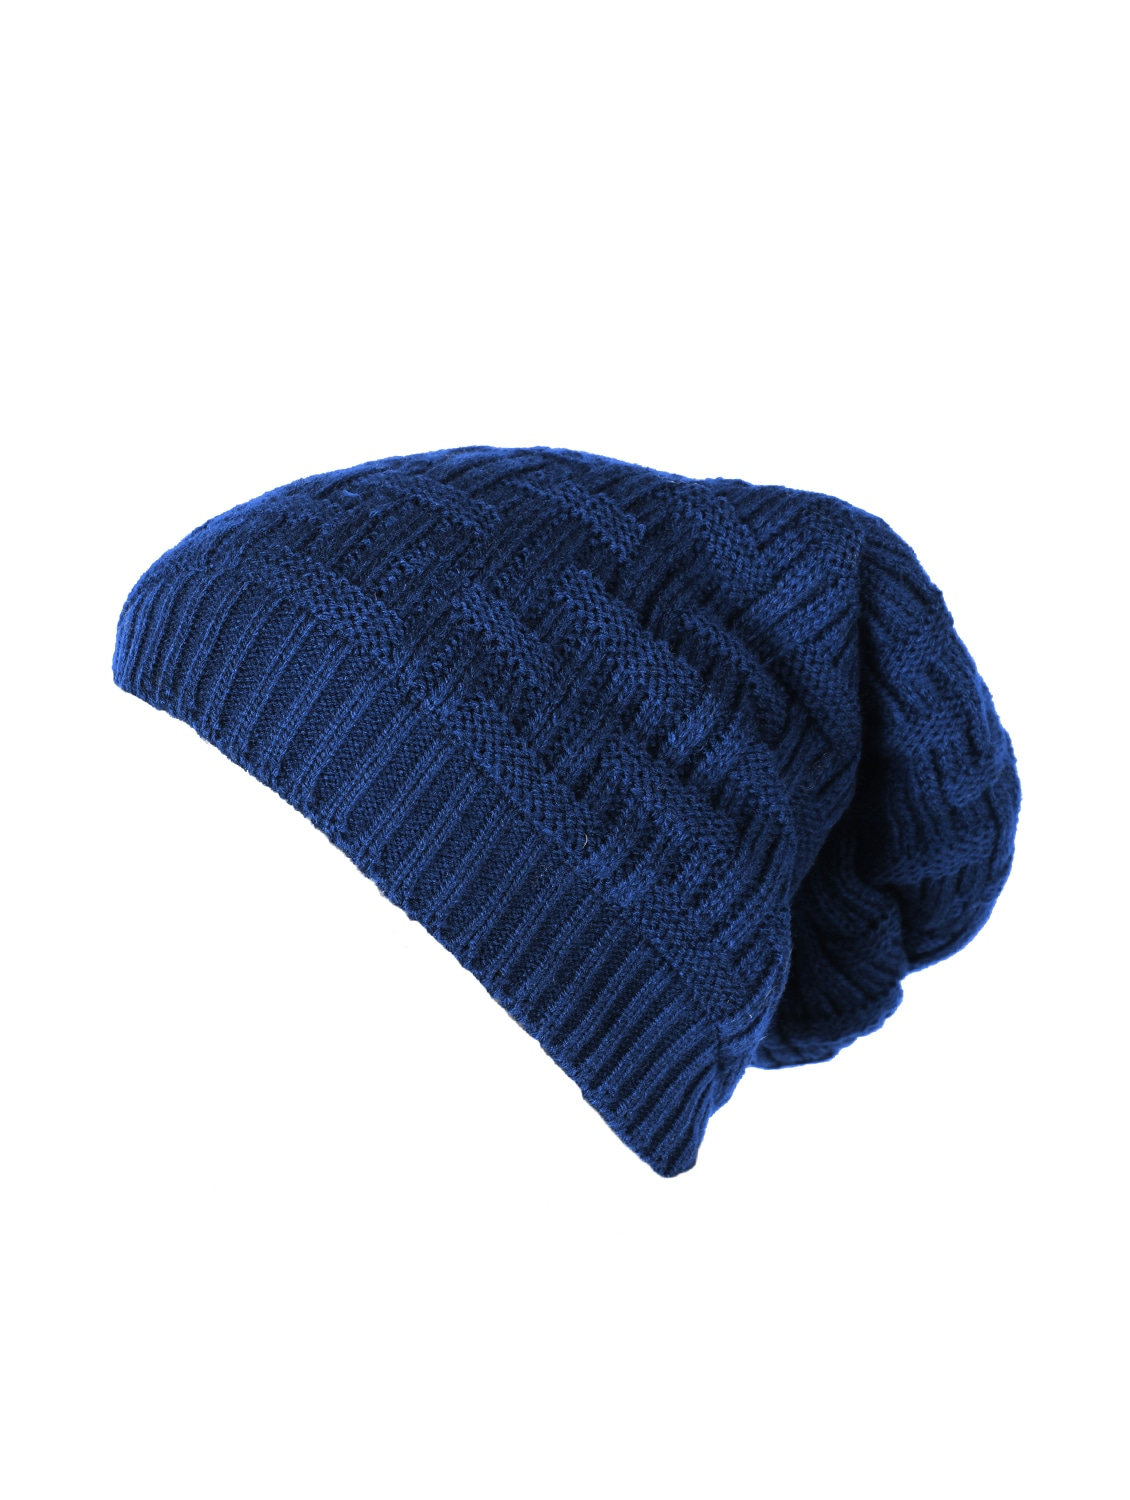 Buy Blue Wool Beanies Cap by Knotyy - Online shopping for Caps And Hats in  India  af2ffa5928e